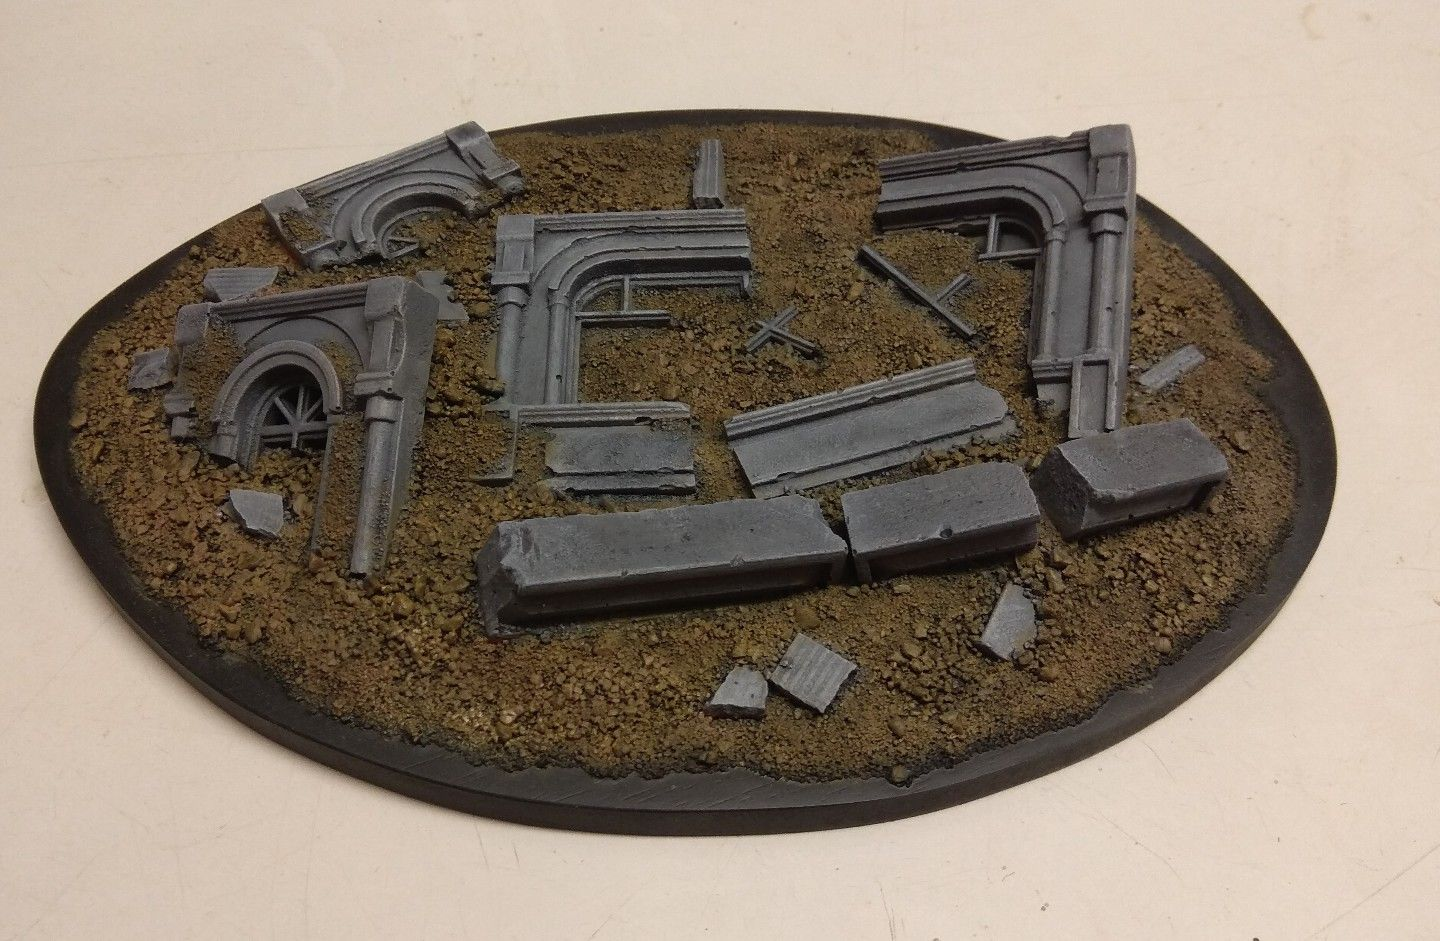 Ruined City Terrain Piece